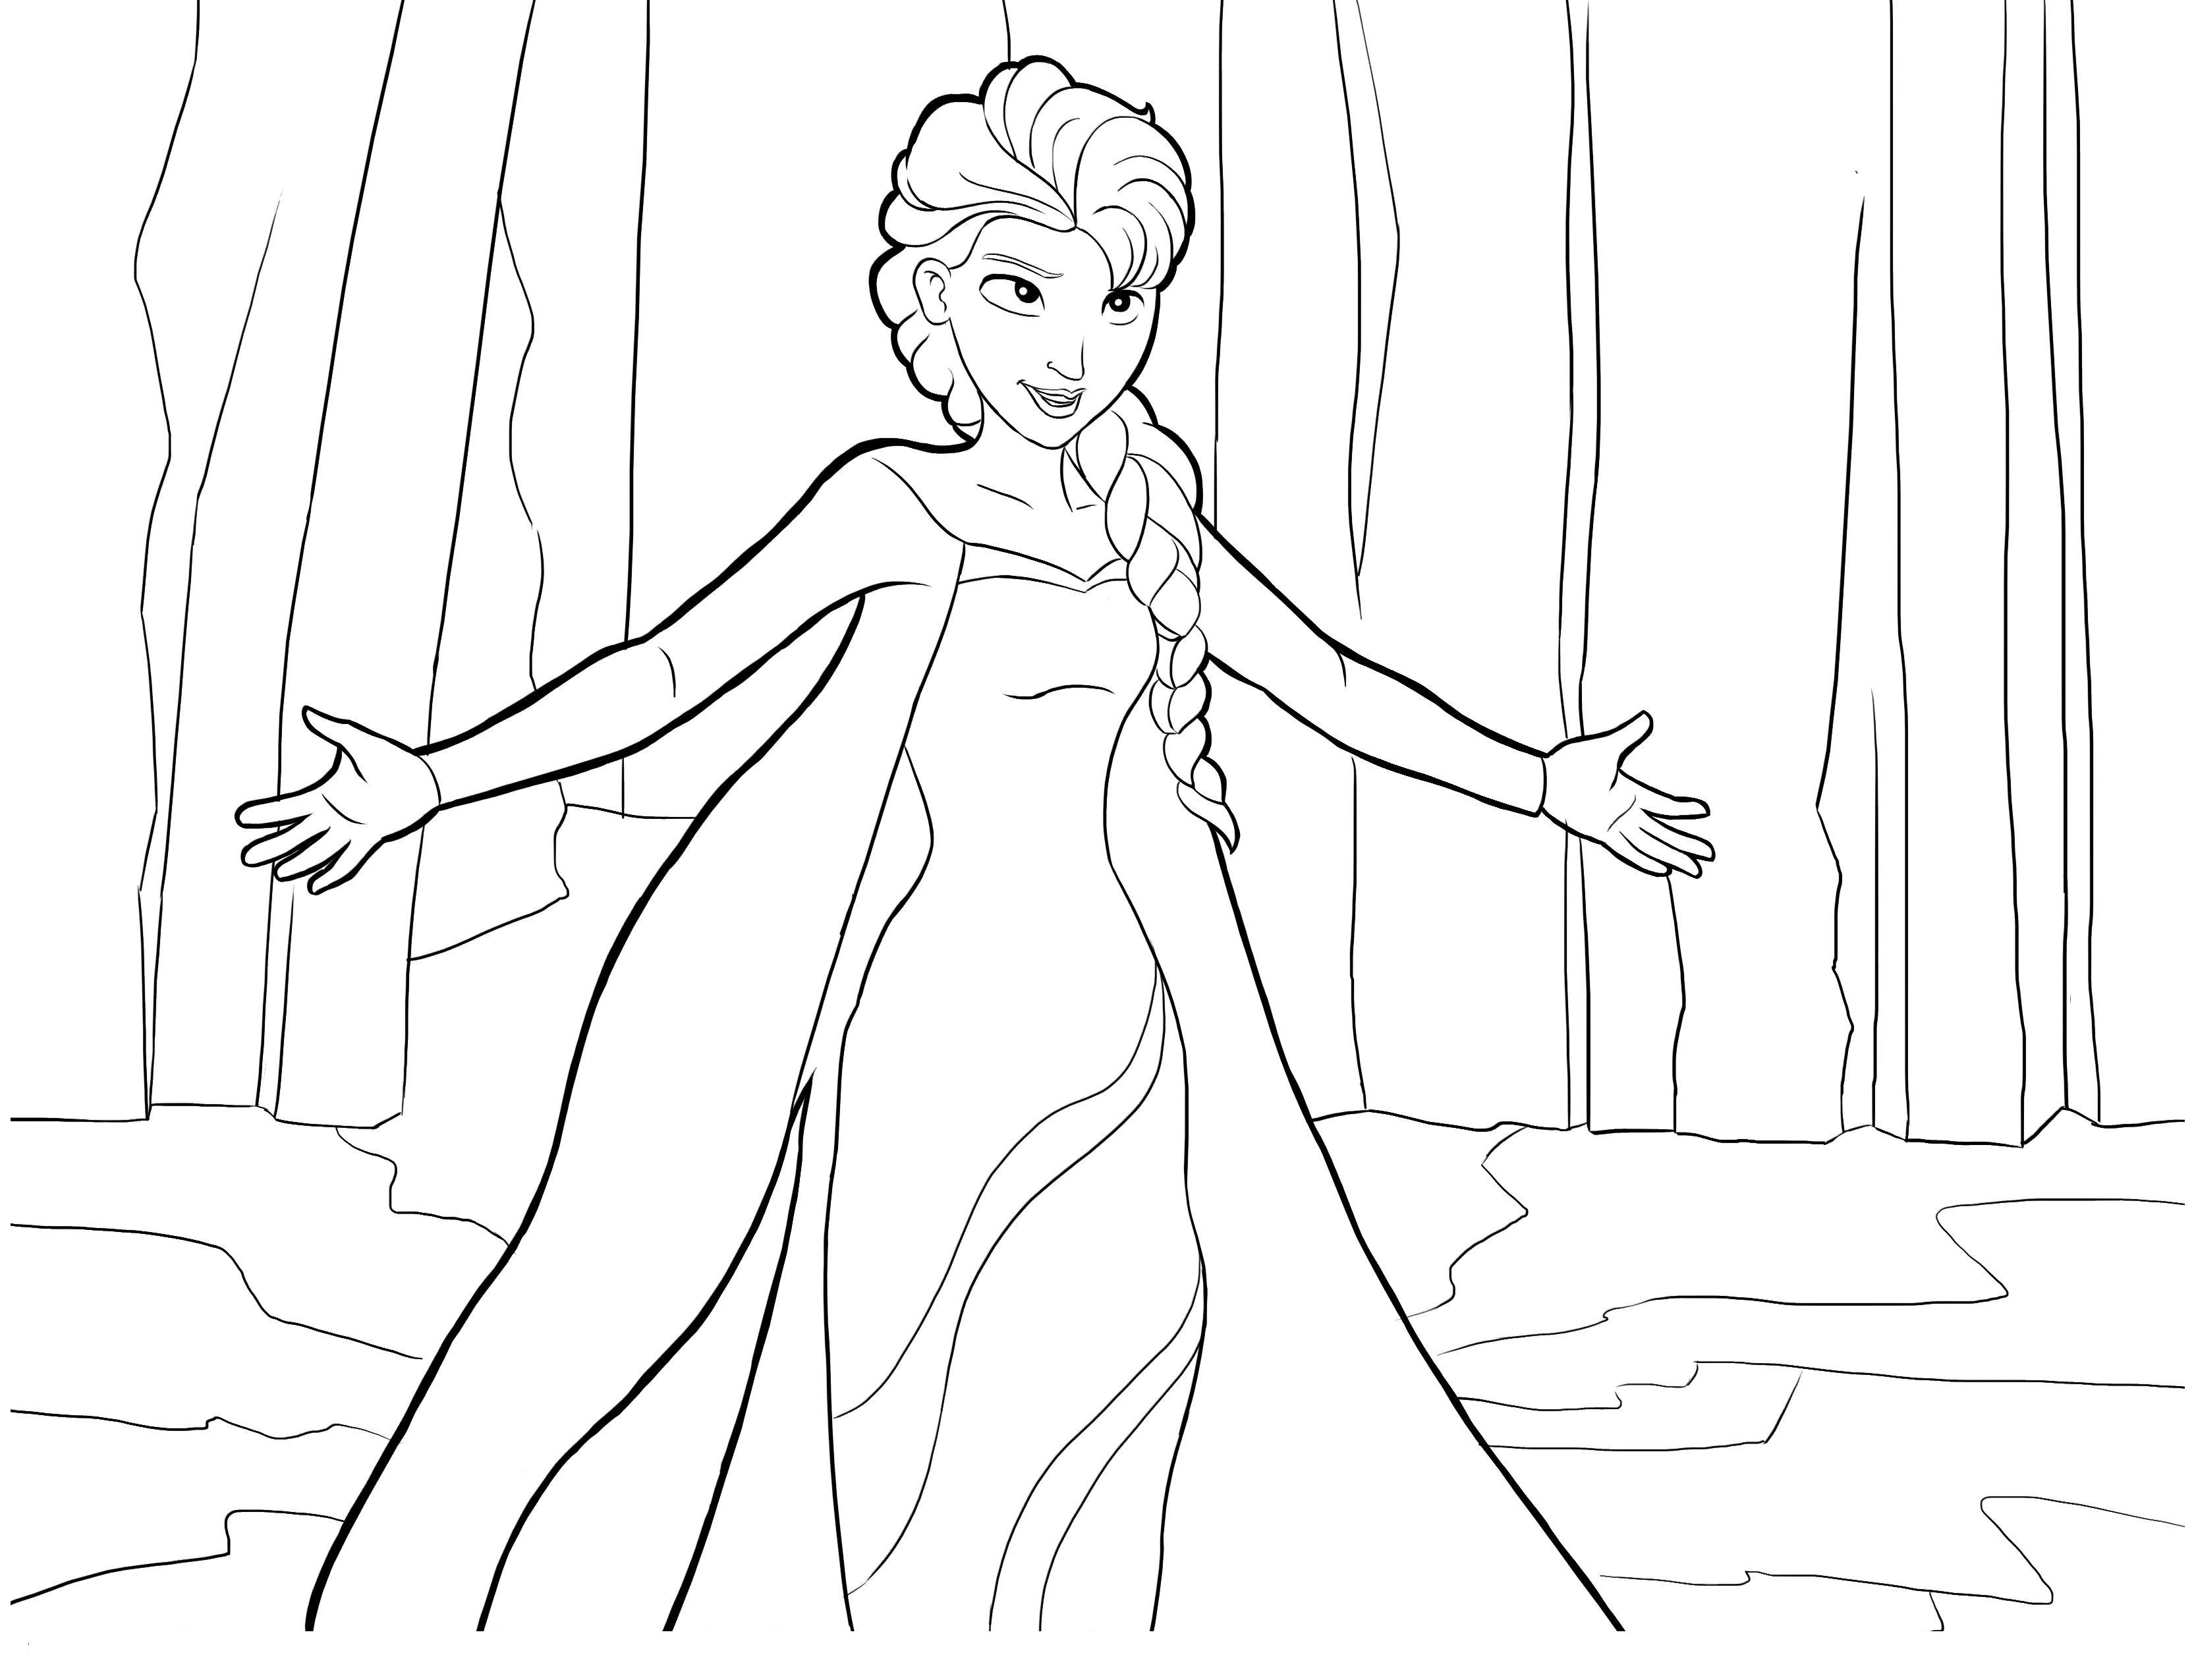 coloring pictures of frozen characters frozen to color for children frozen kids coloring pages frozen of pictures characters coloring